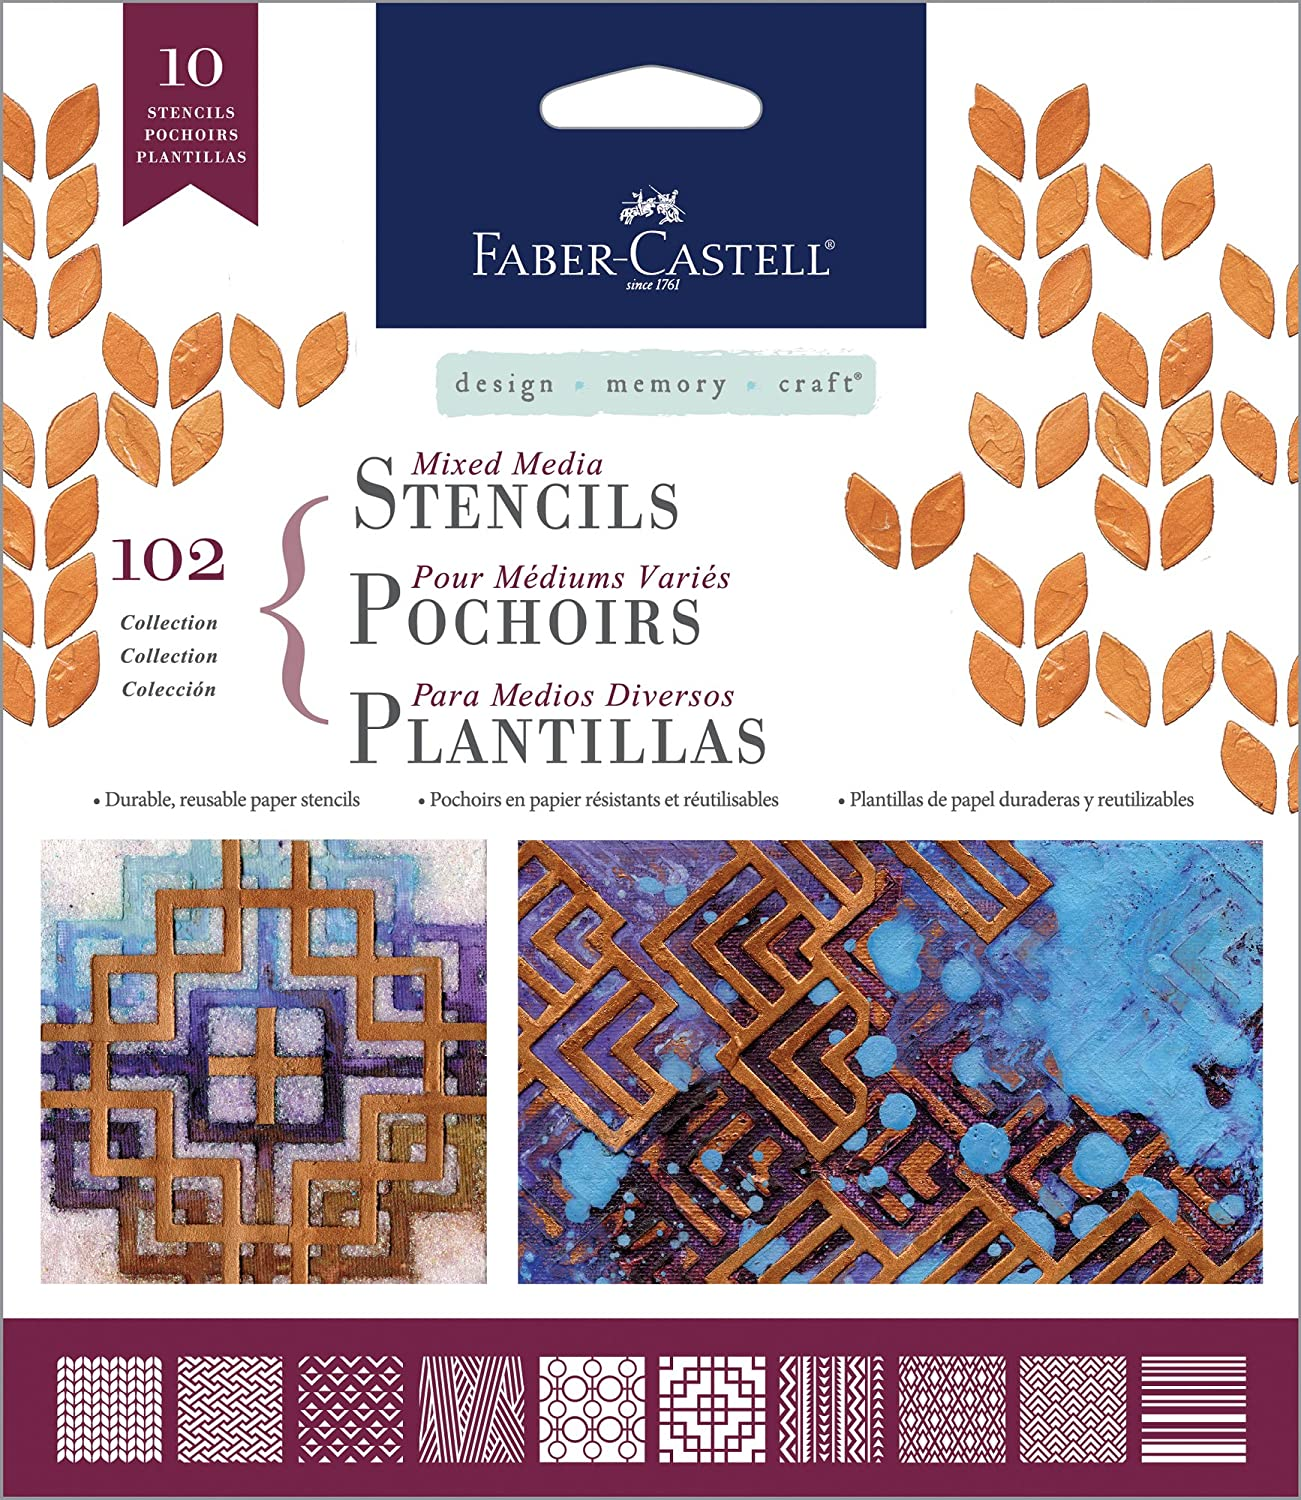 Faber Castell FaberCastell 302 Mixed Media Stencils